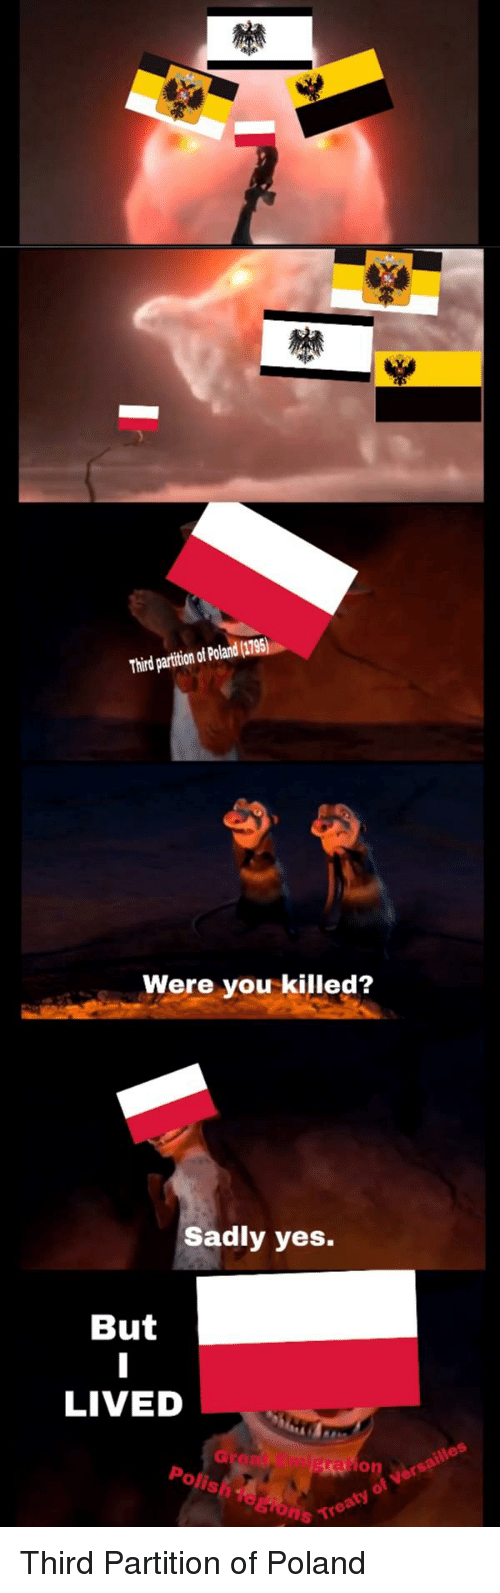 History, Poland, and Yes: Third partition of Poland (1795)  Were you killed?  Sadly yes.  But  LIVED  on je  Polis